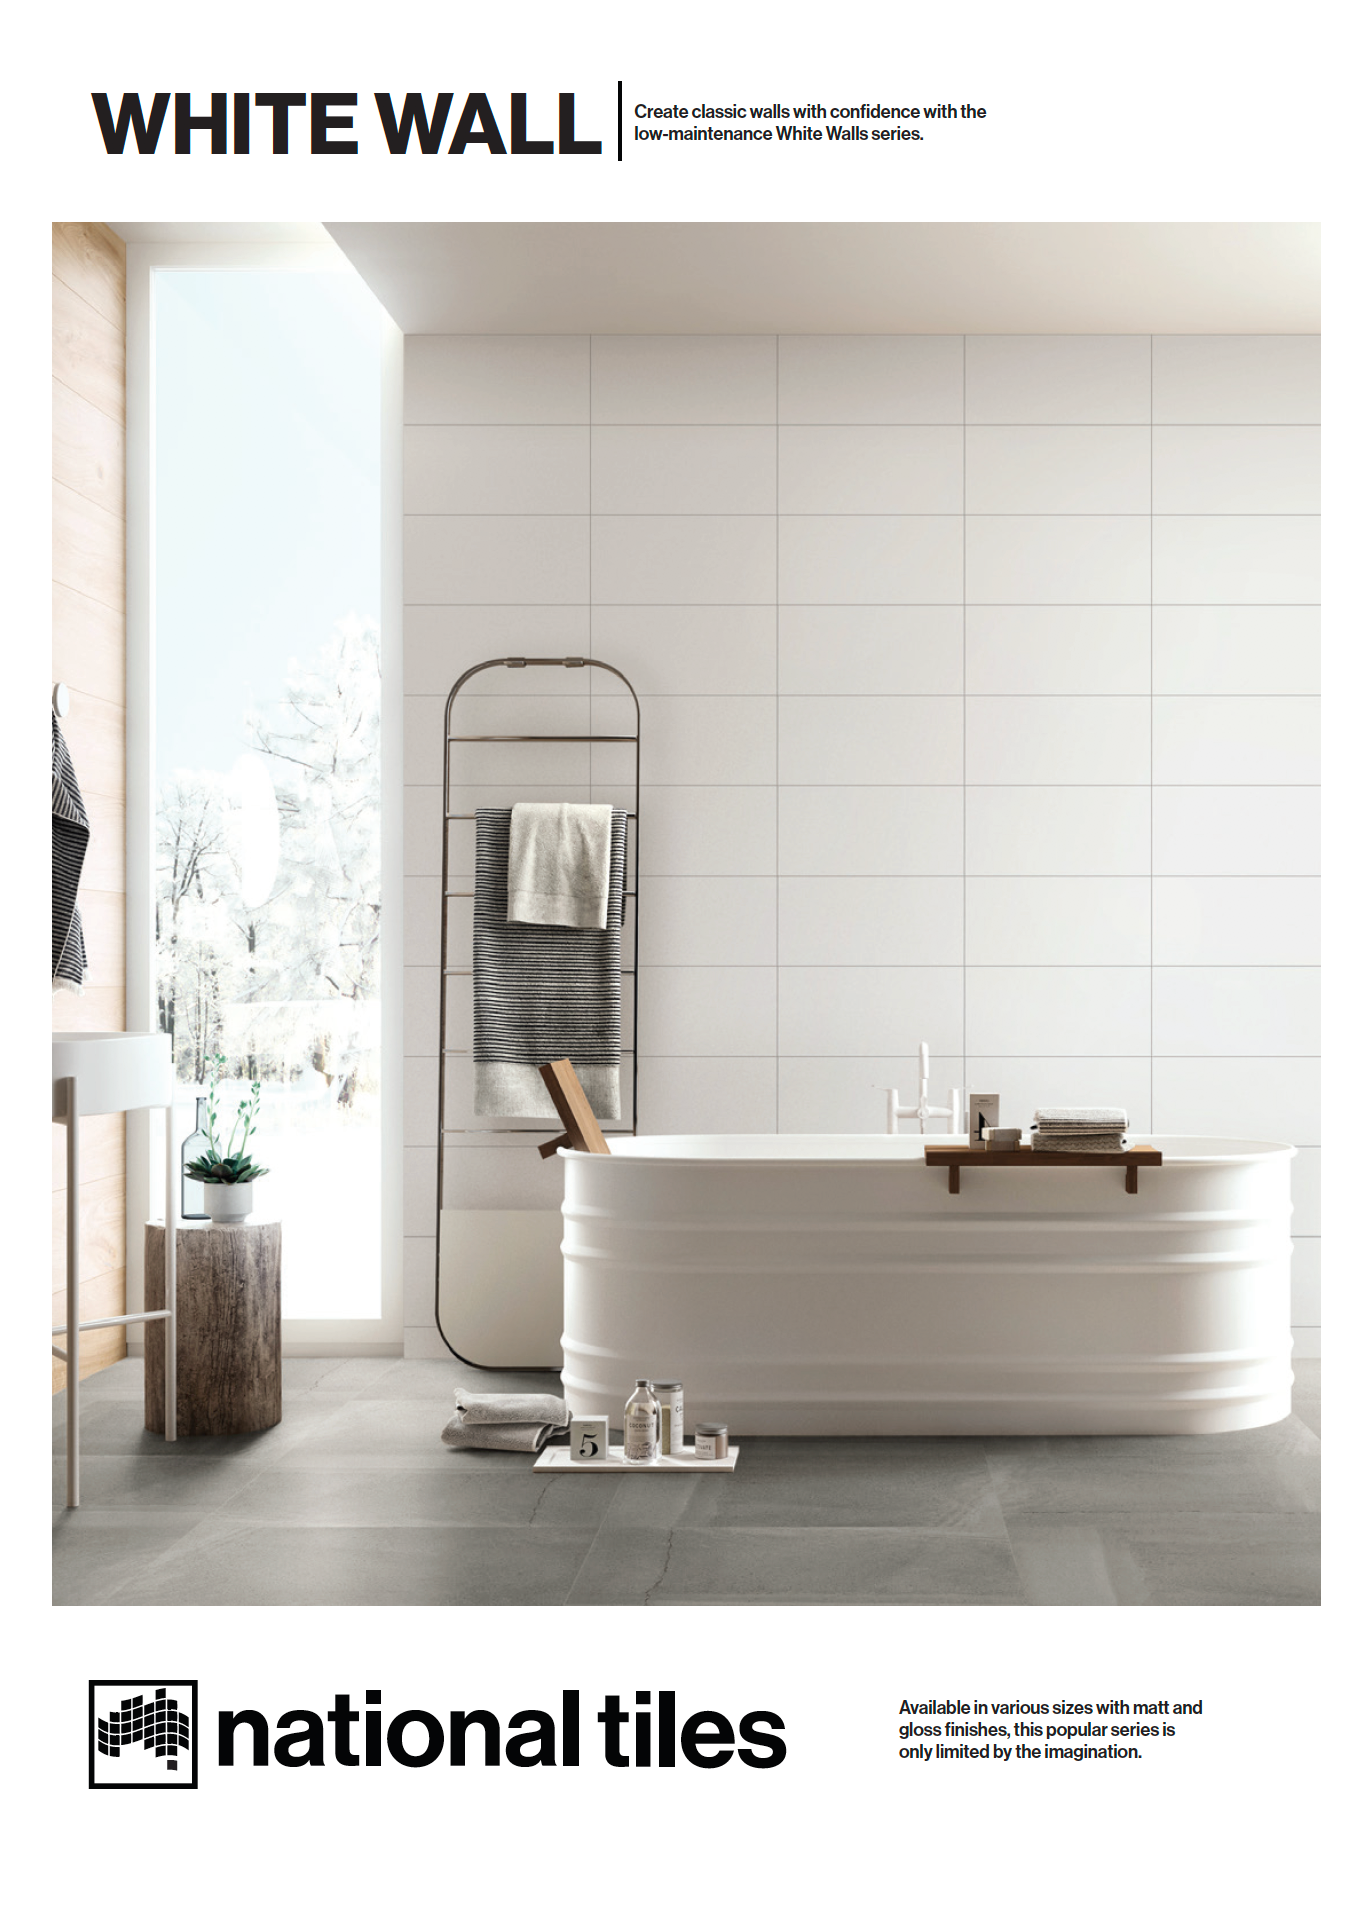 Matt White 300x600 Wall Tile White Bathroom Tiles White Tile Bathroom Walls Modern White Bathroom